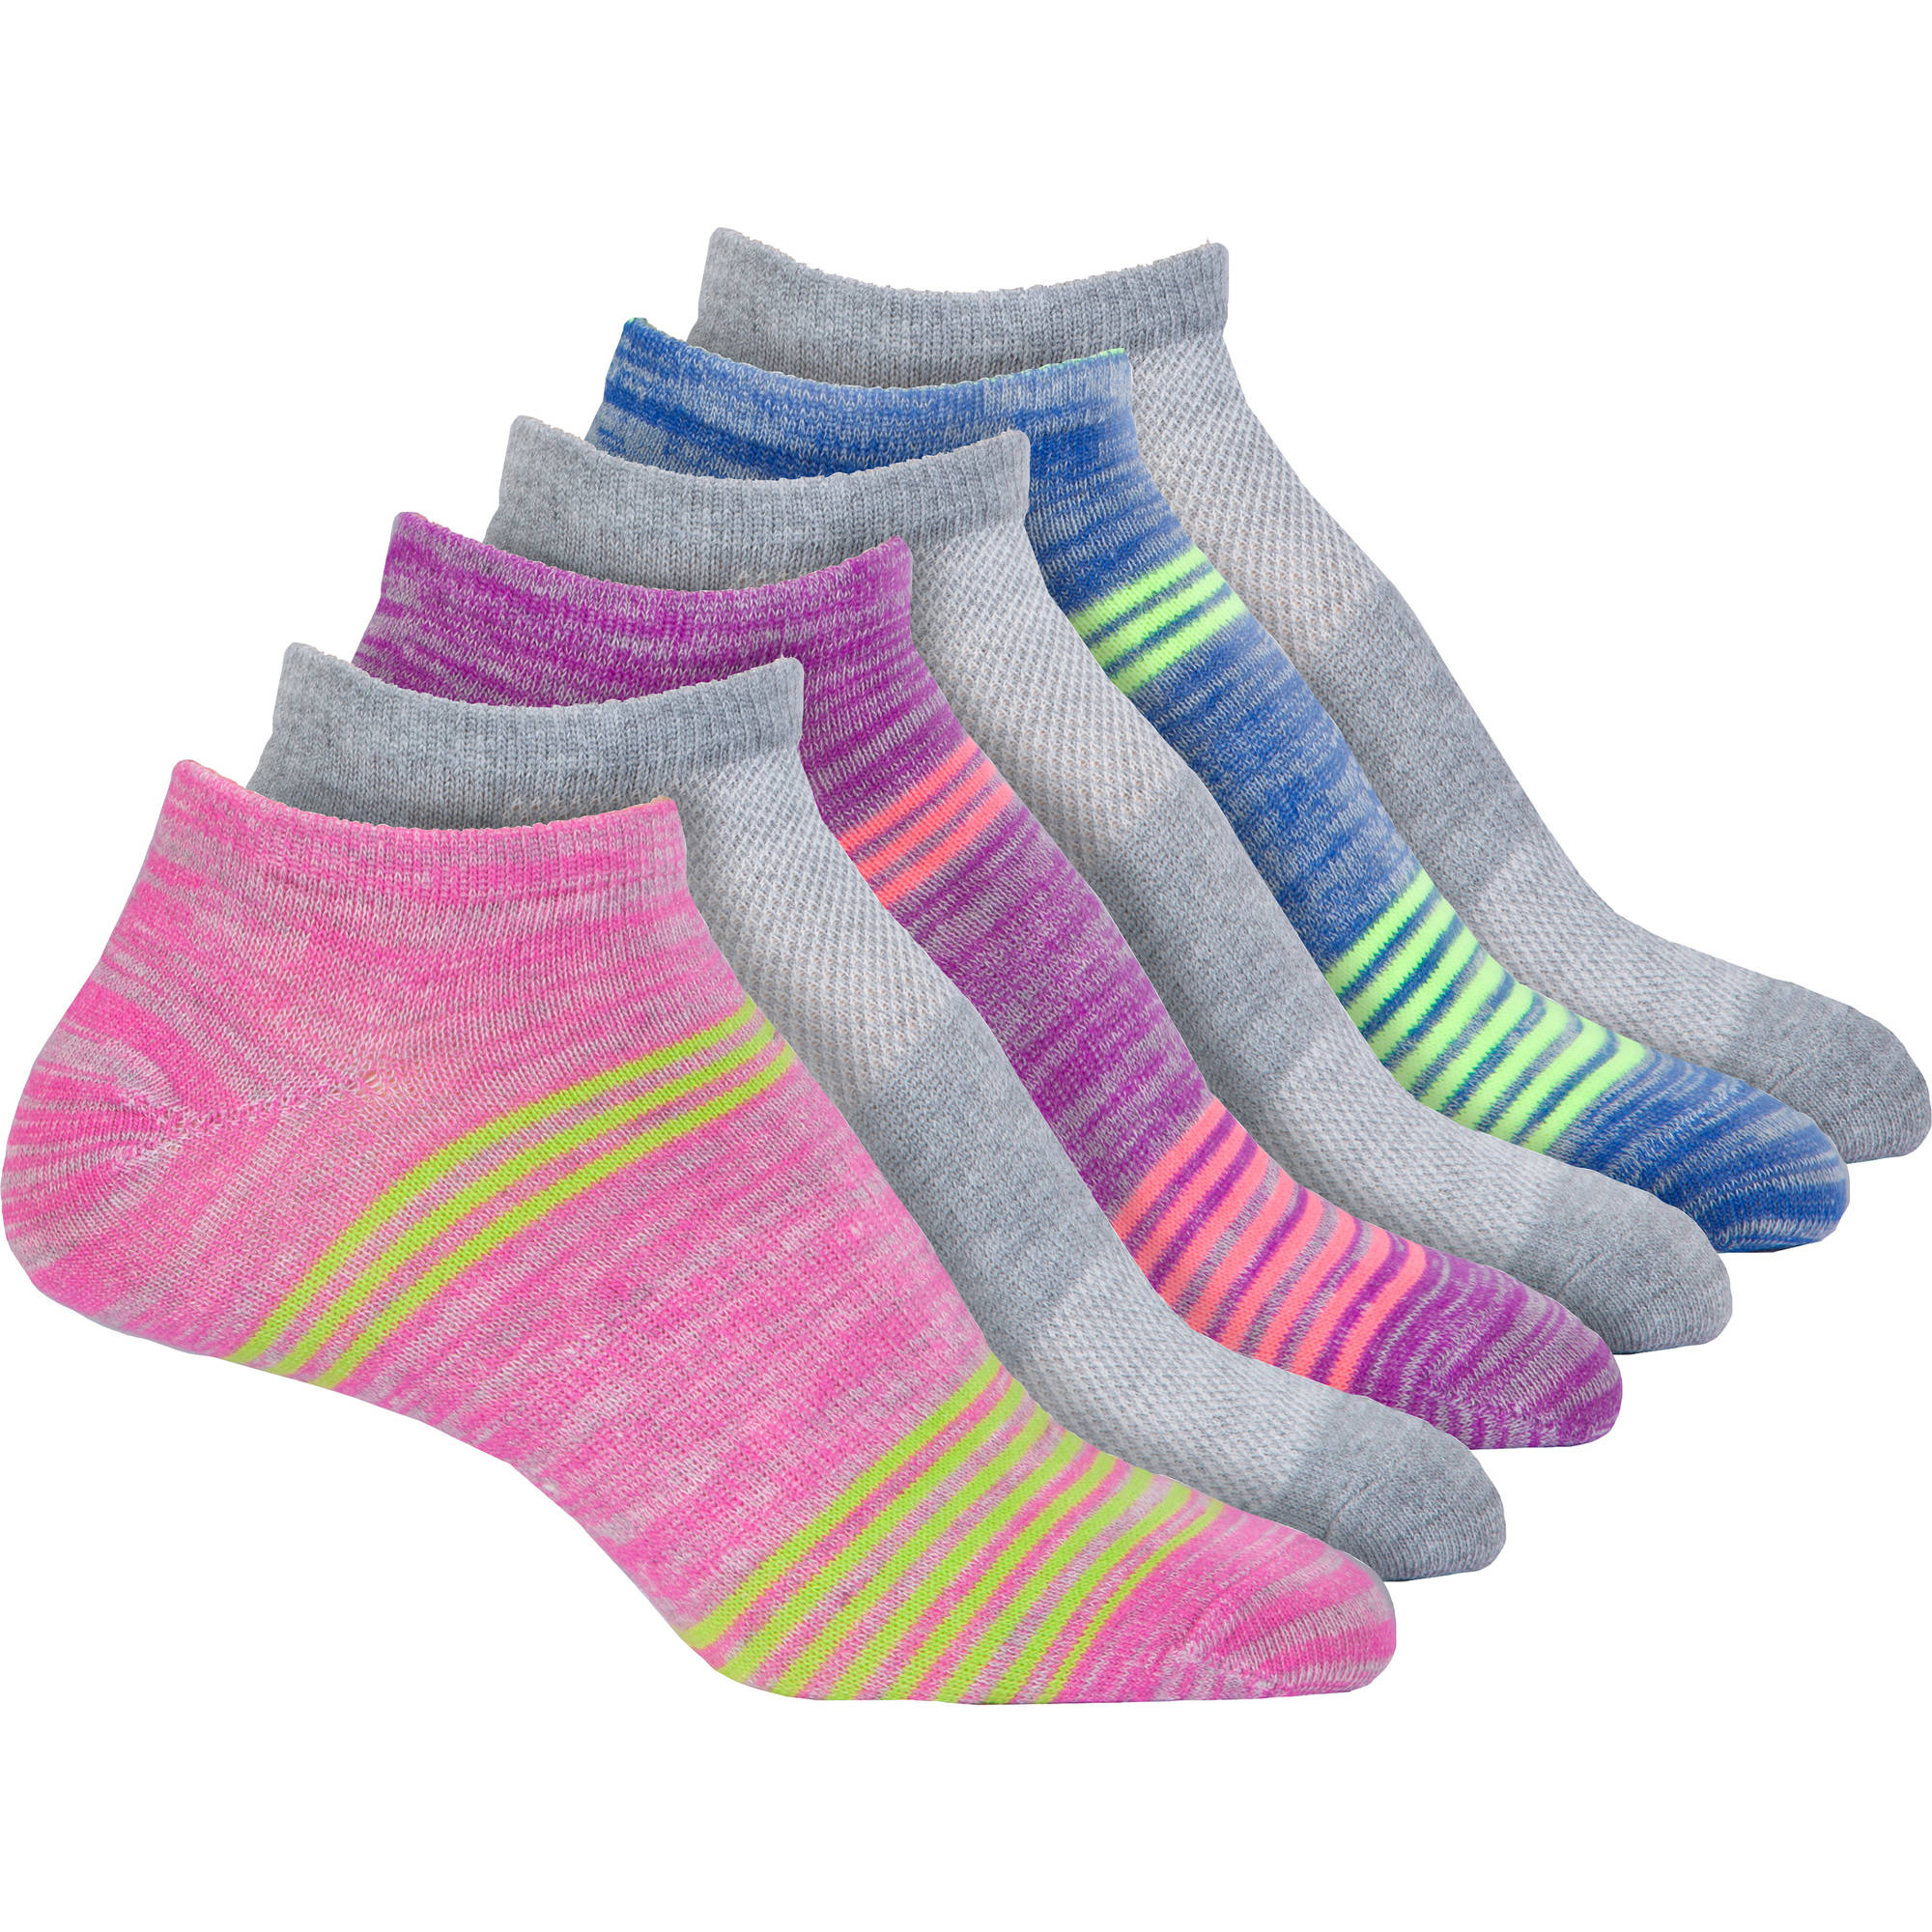 Ultralite NoShow Socks, Pack of 6